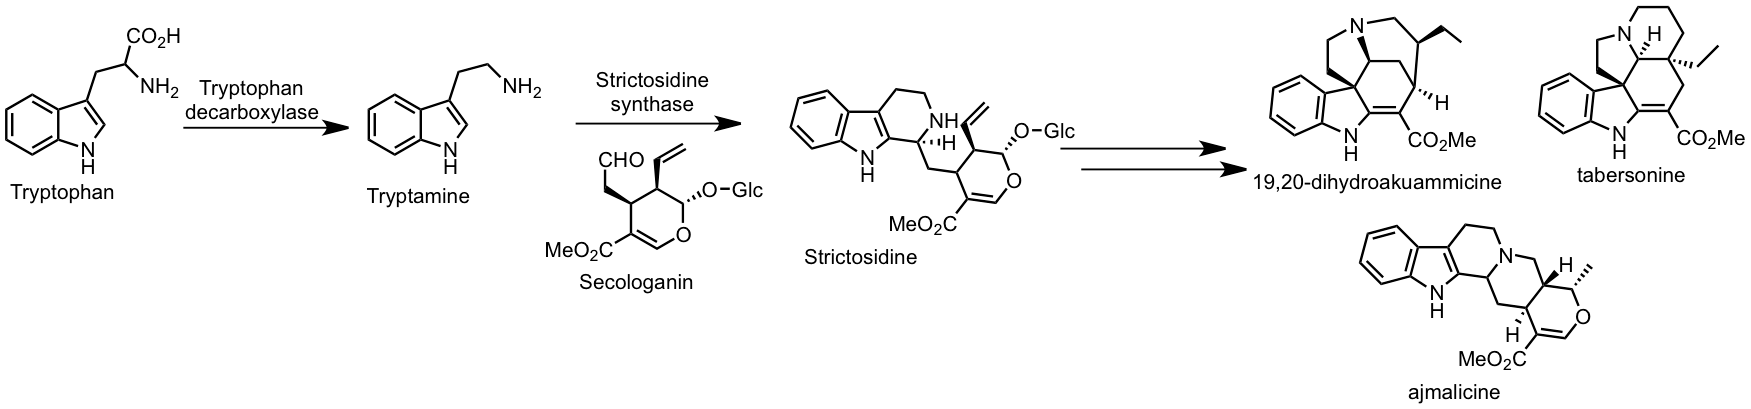 biosynthesis pathway.png